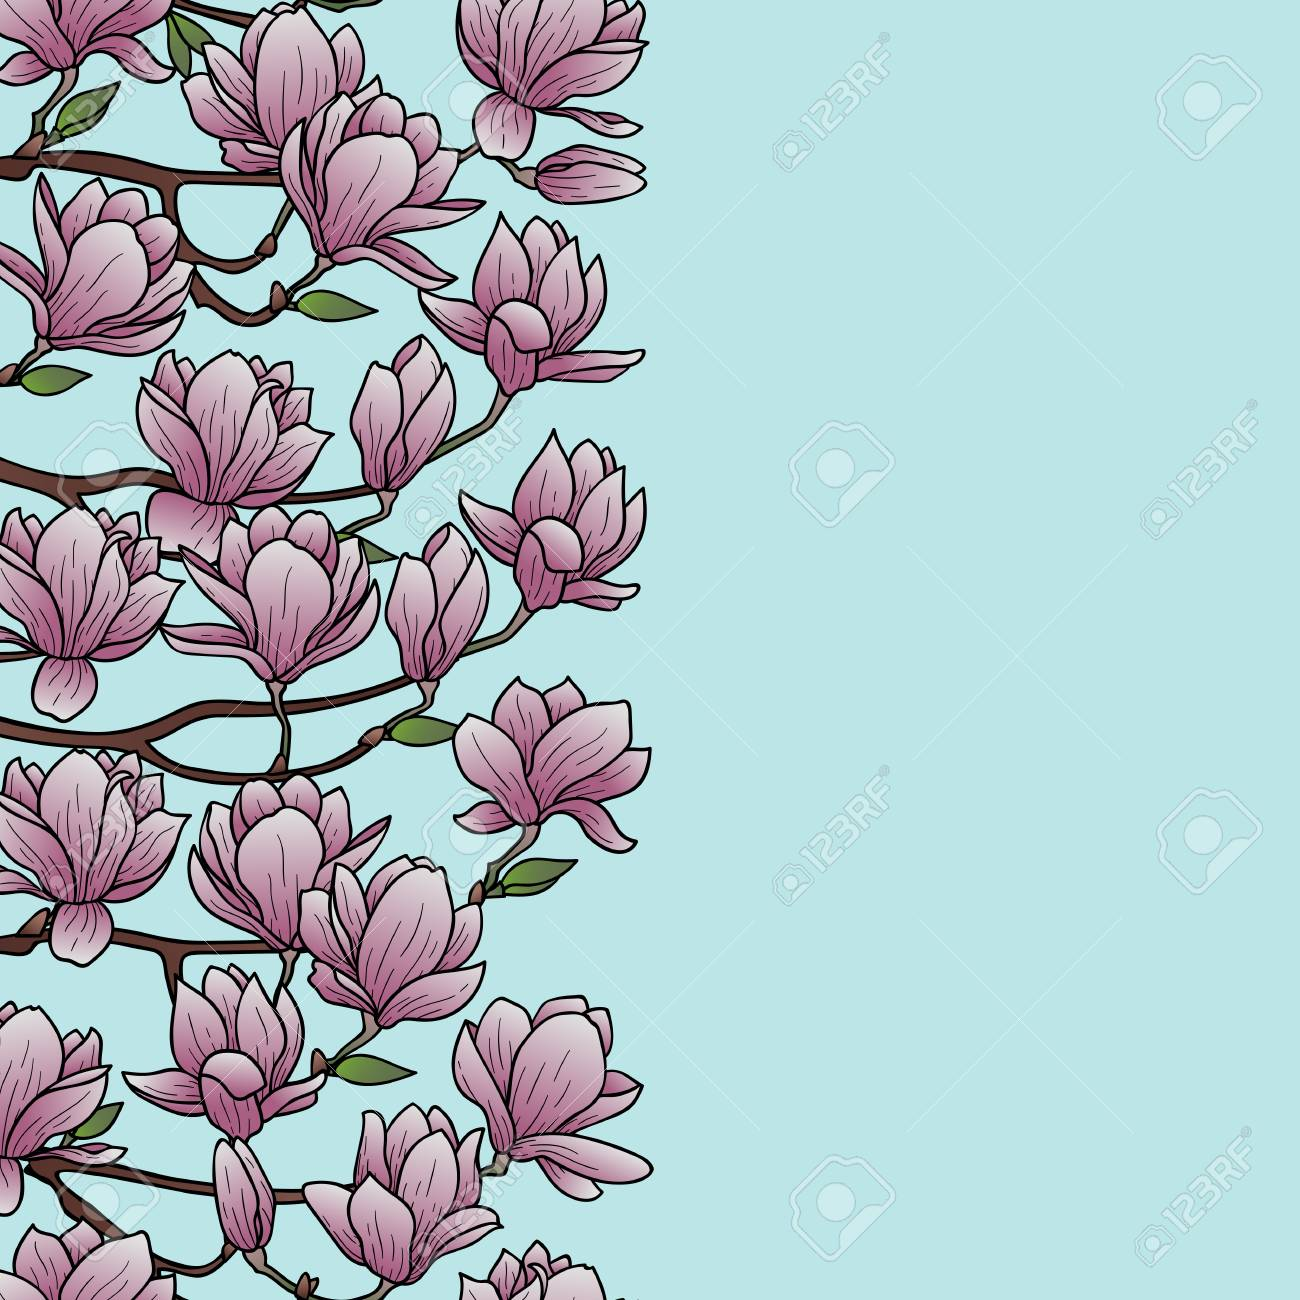 Magnolia Outline Seamless Border Floral Romantic Wallpaper For